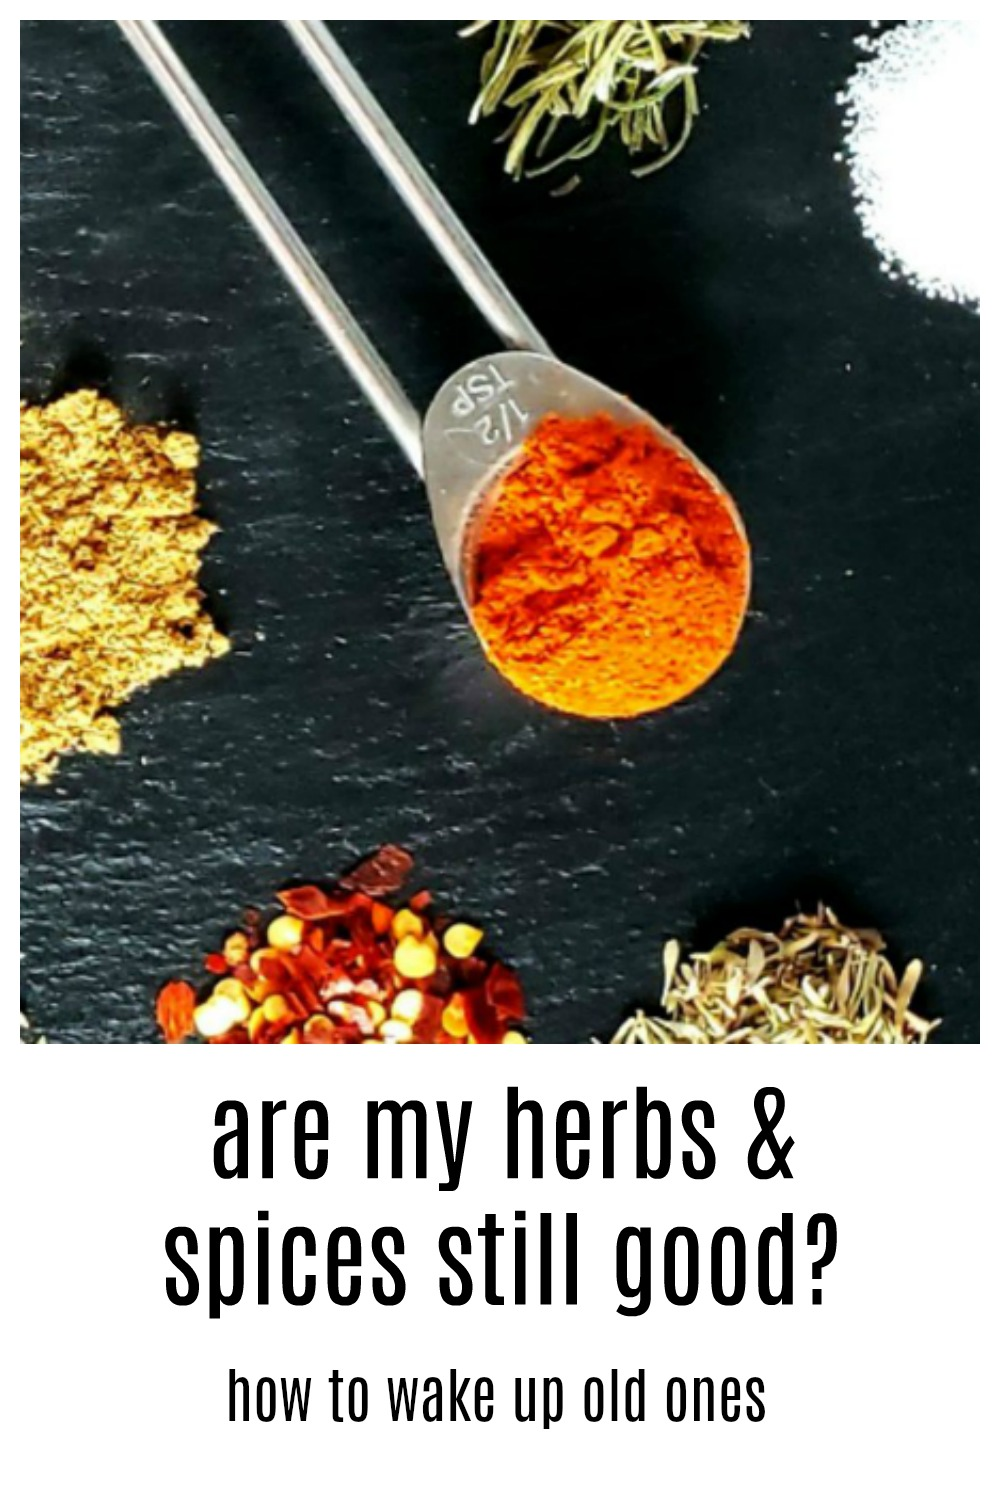 Are My Dried Spices & Herbs Still Good?